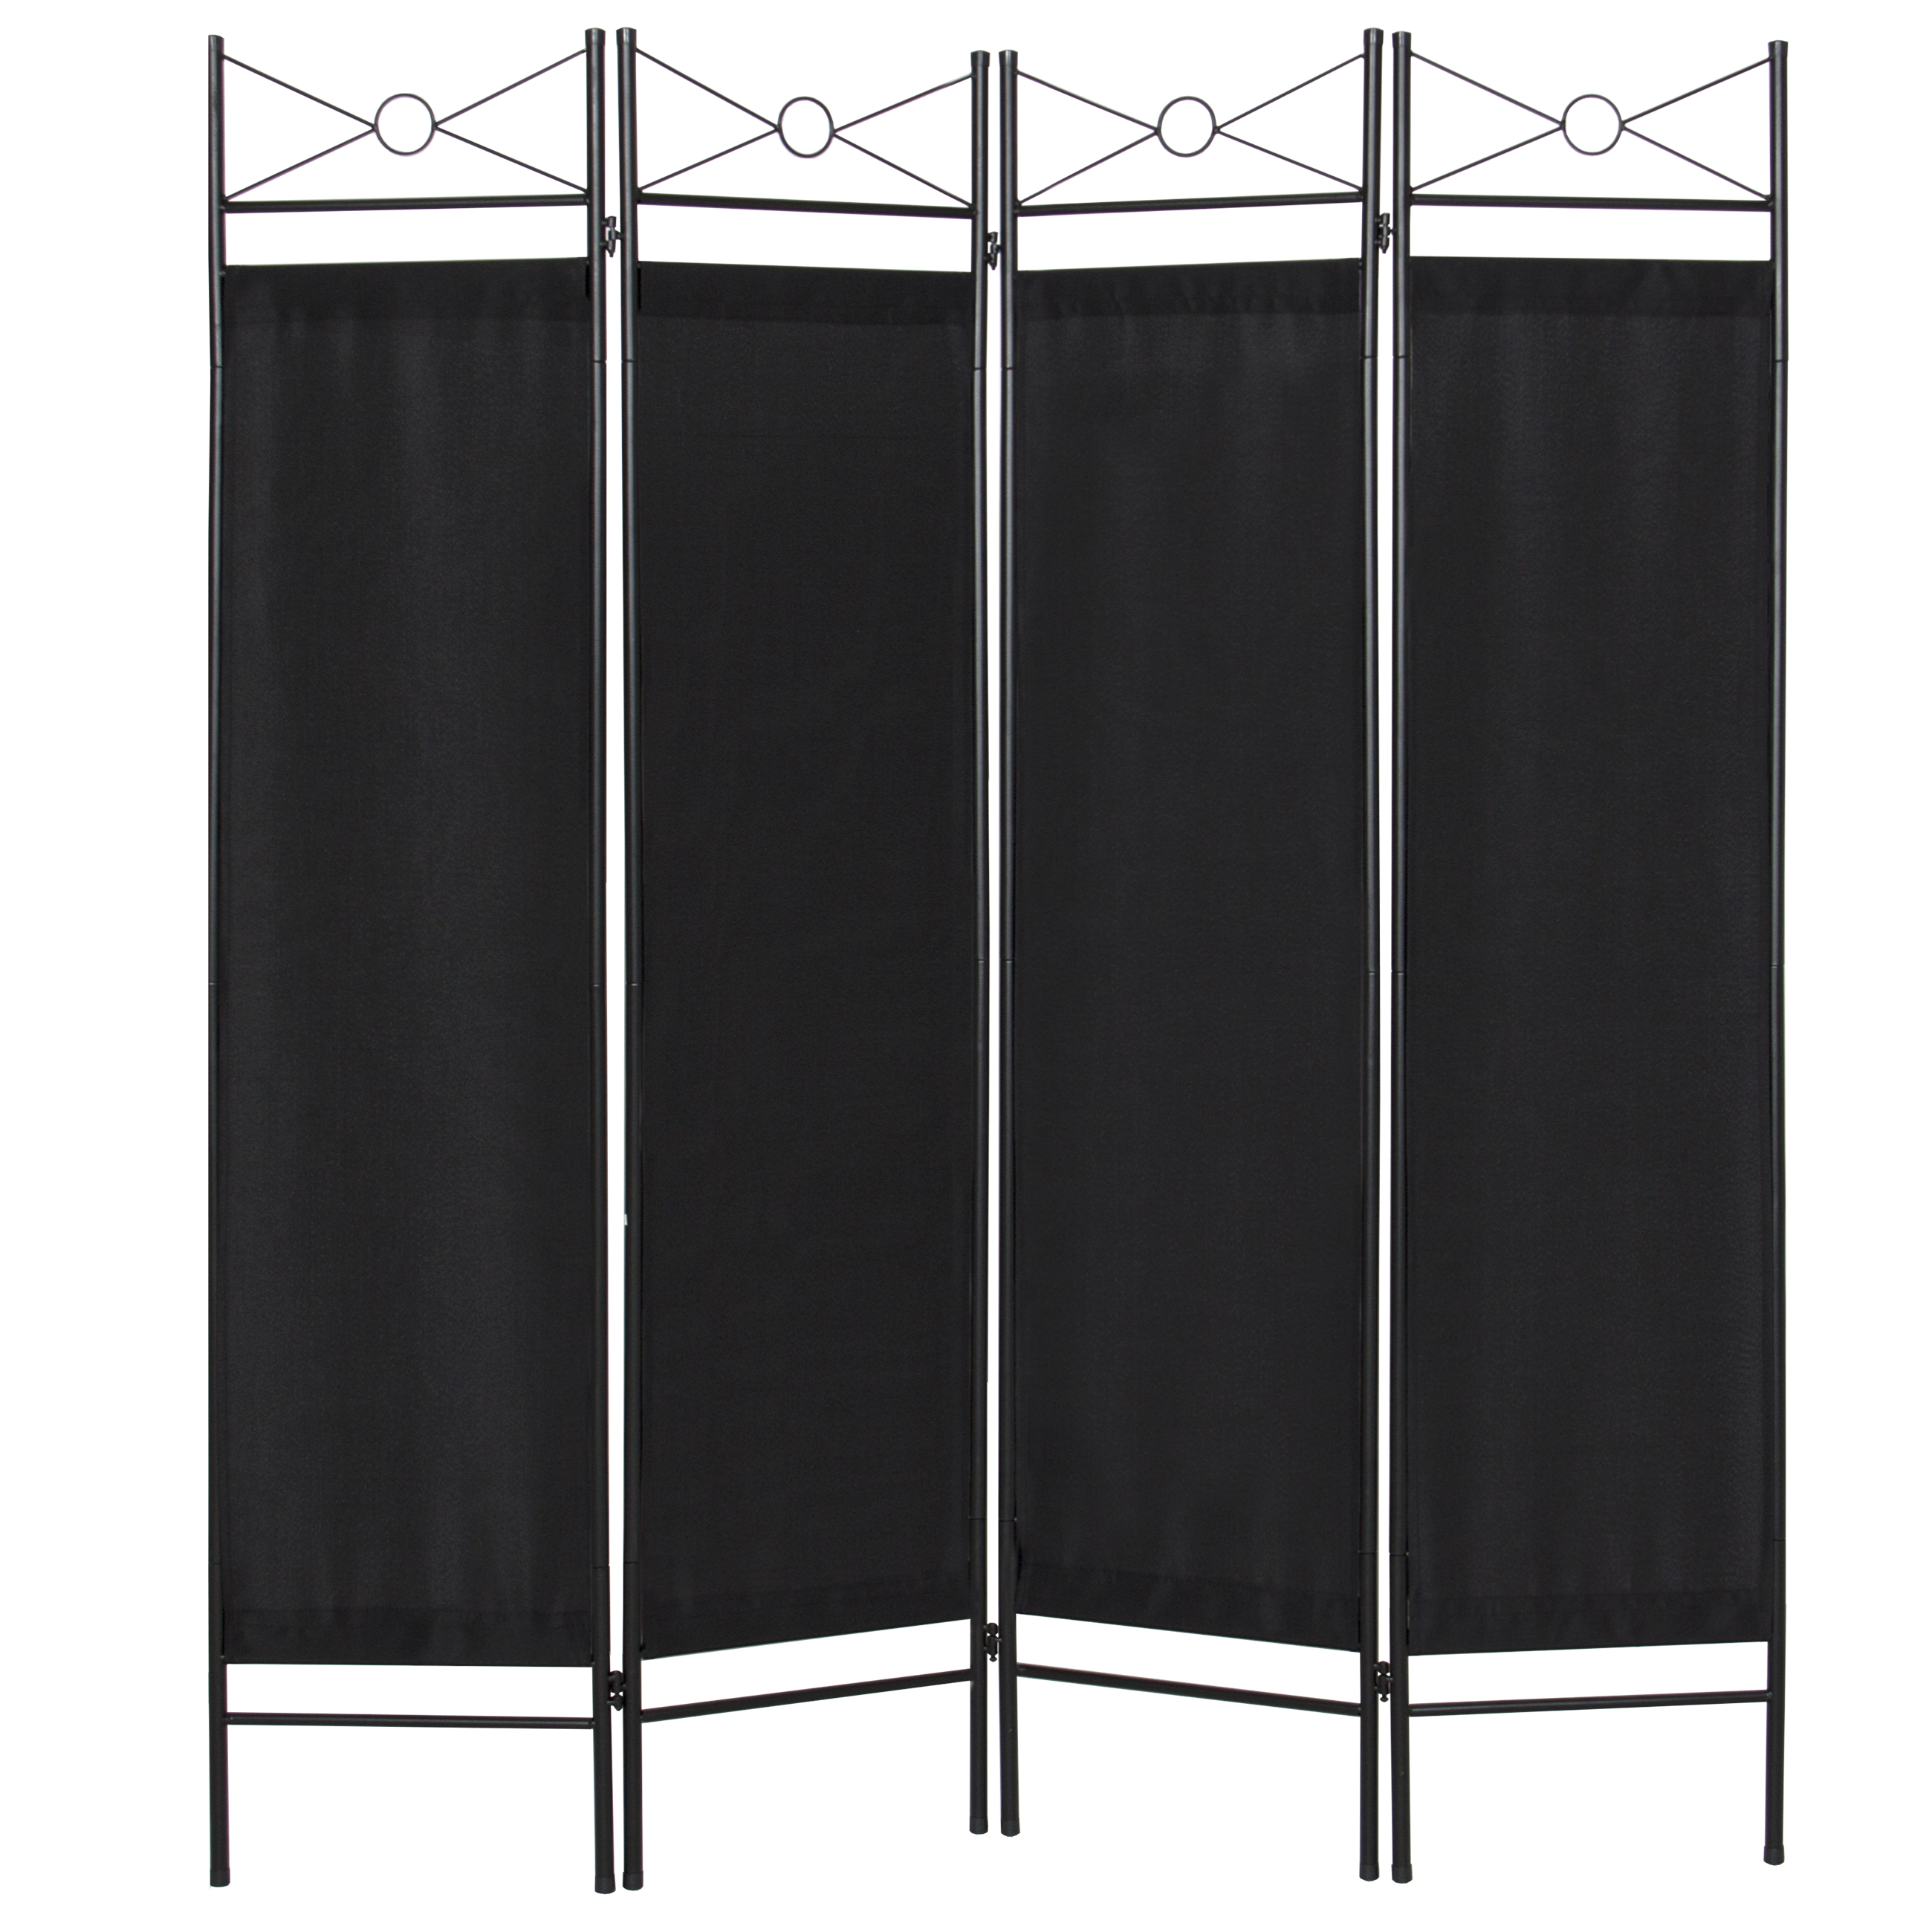 product by aluminum perforated room b collection space metal classic en divider designs moz in dividers